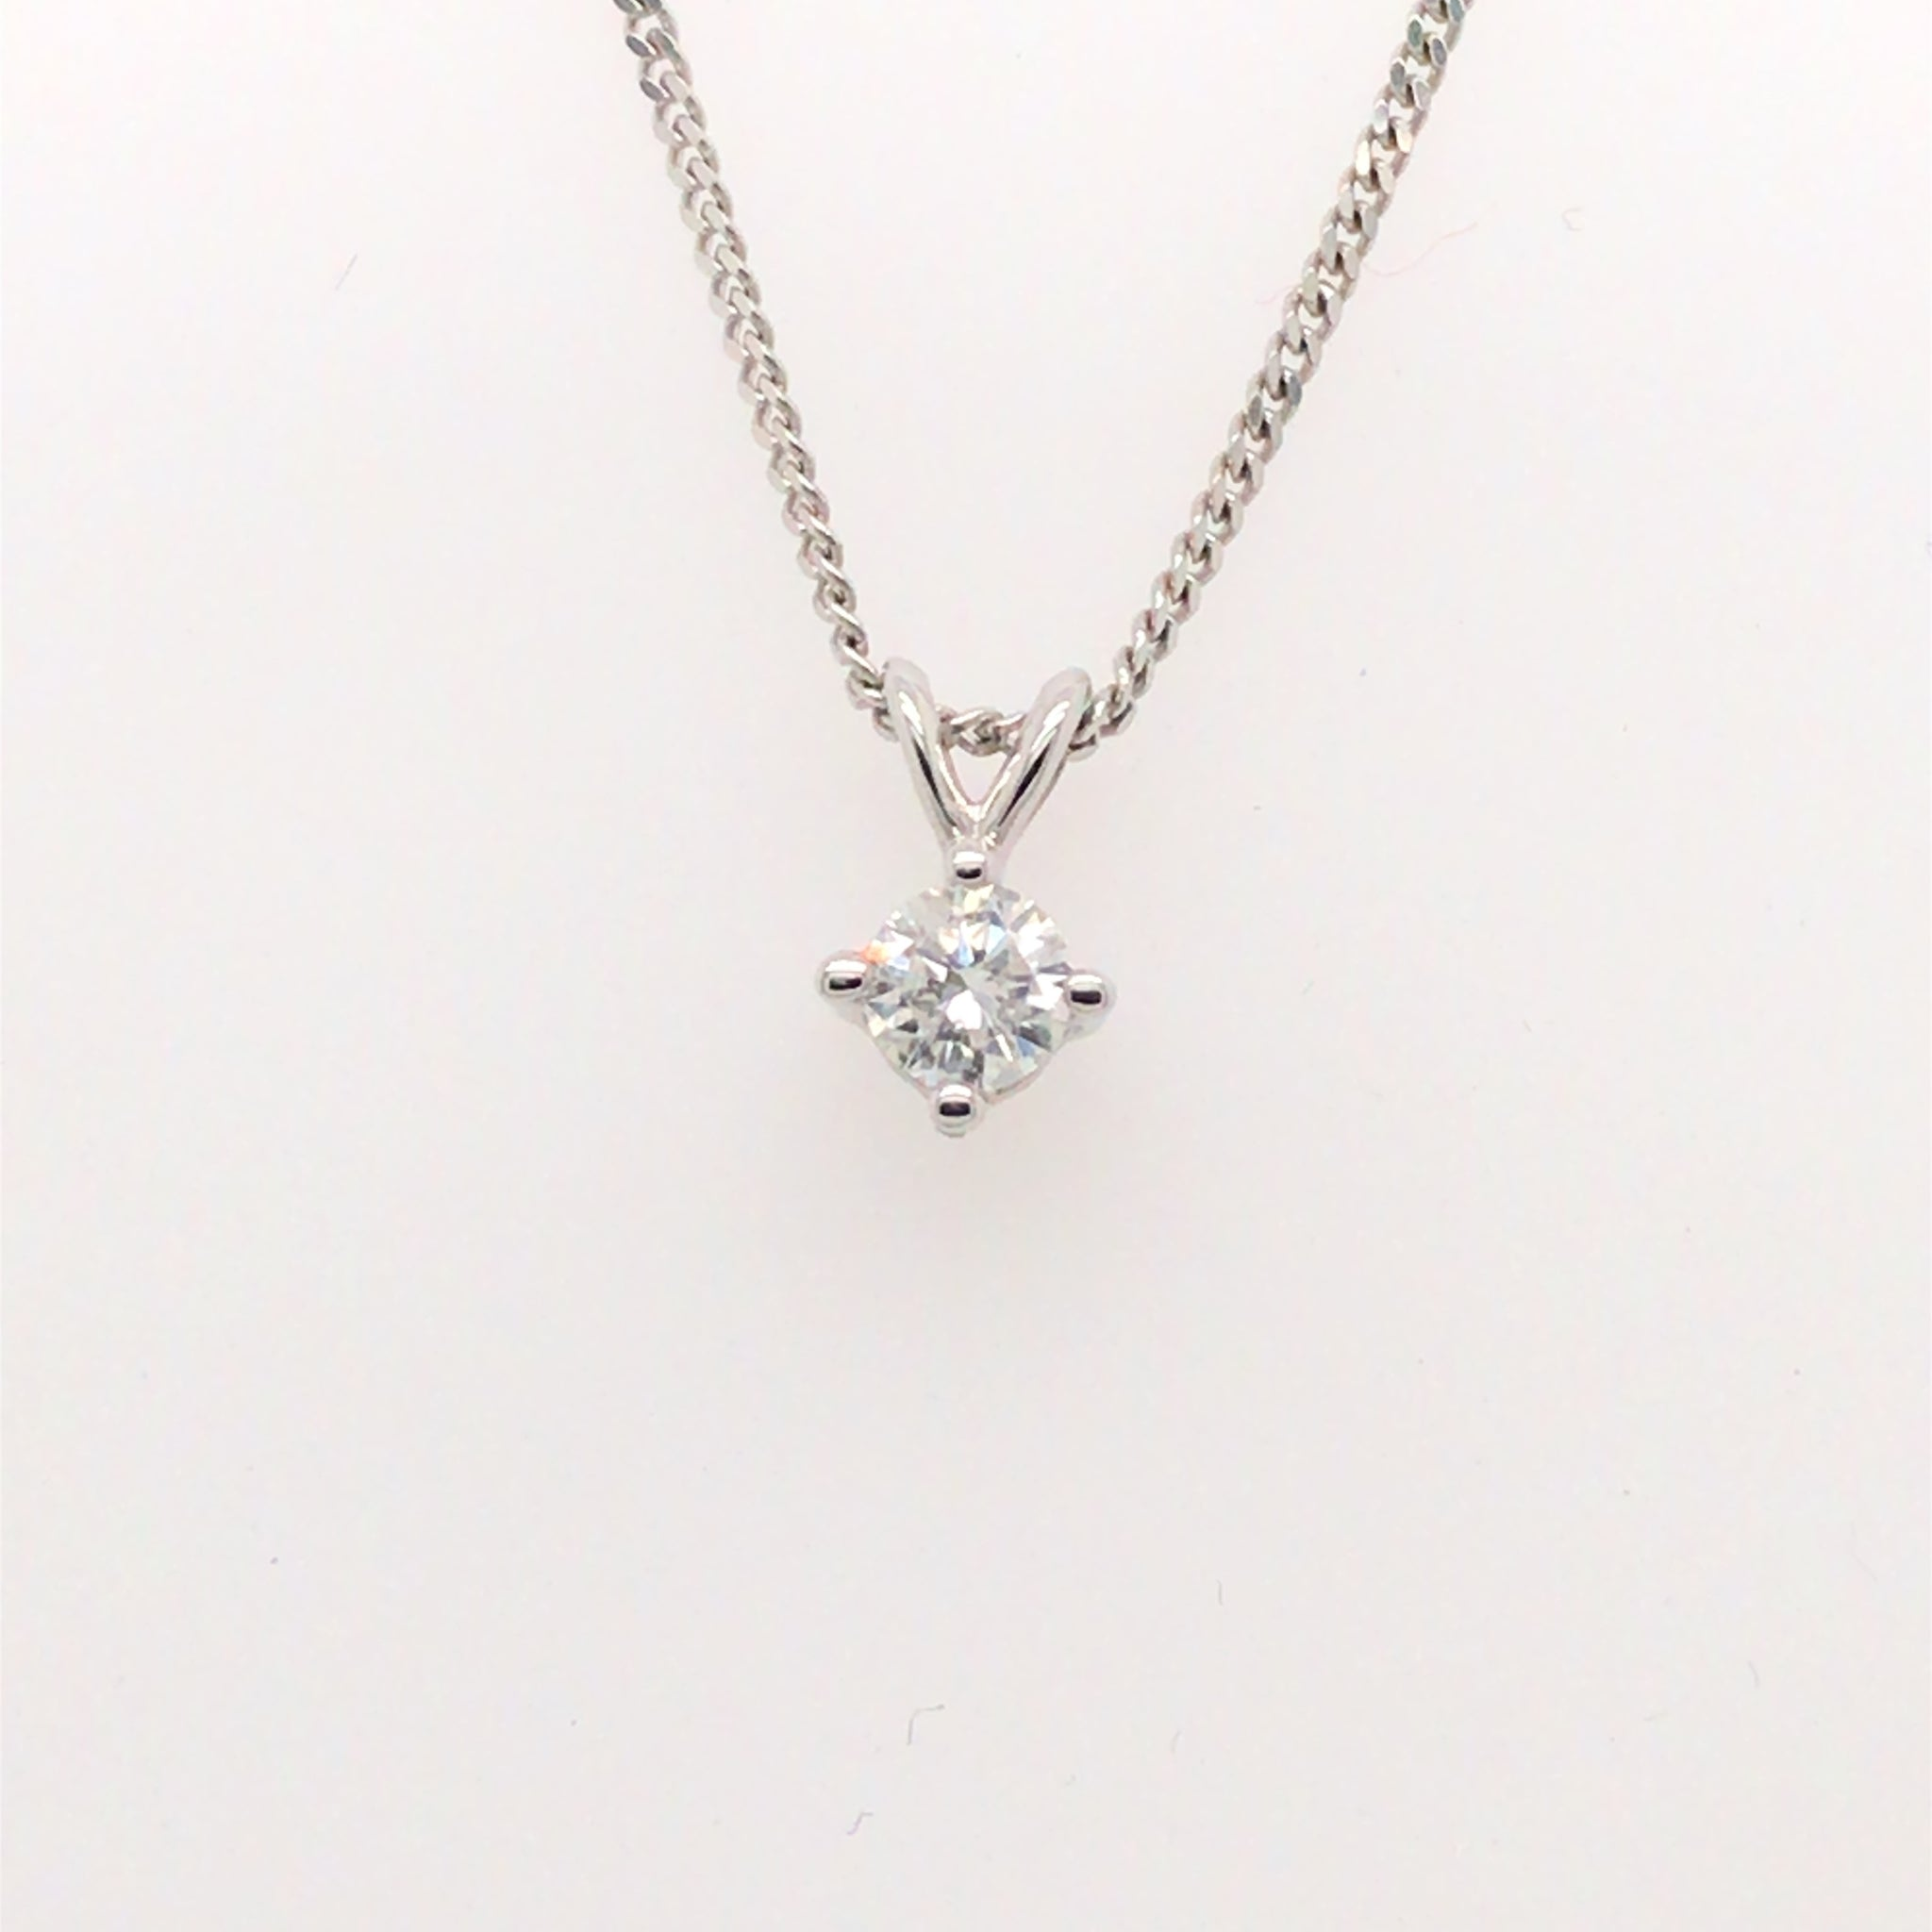 9ct White Gold 0.20ct Diamond Solitaire Pendant